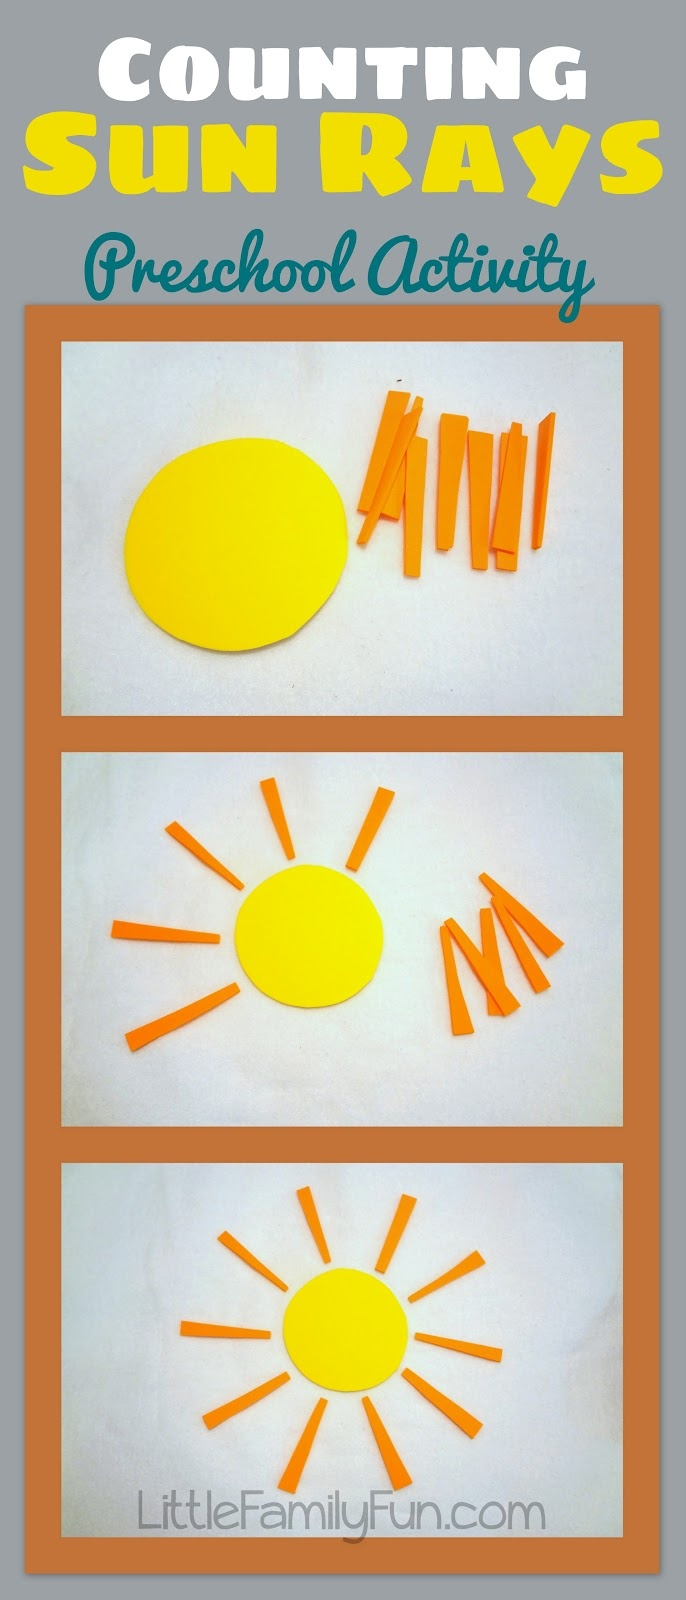 Counting Sun Rays  Preschool Activity  This Idea Could Also Be Turned  Into A Nim